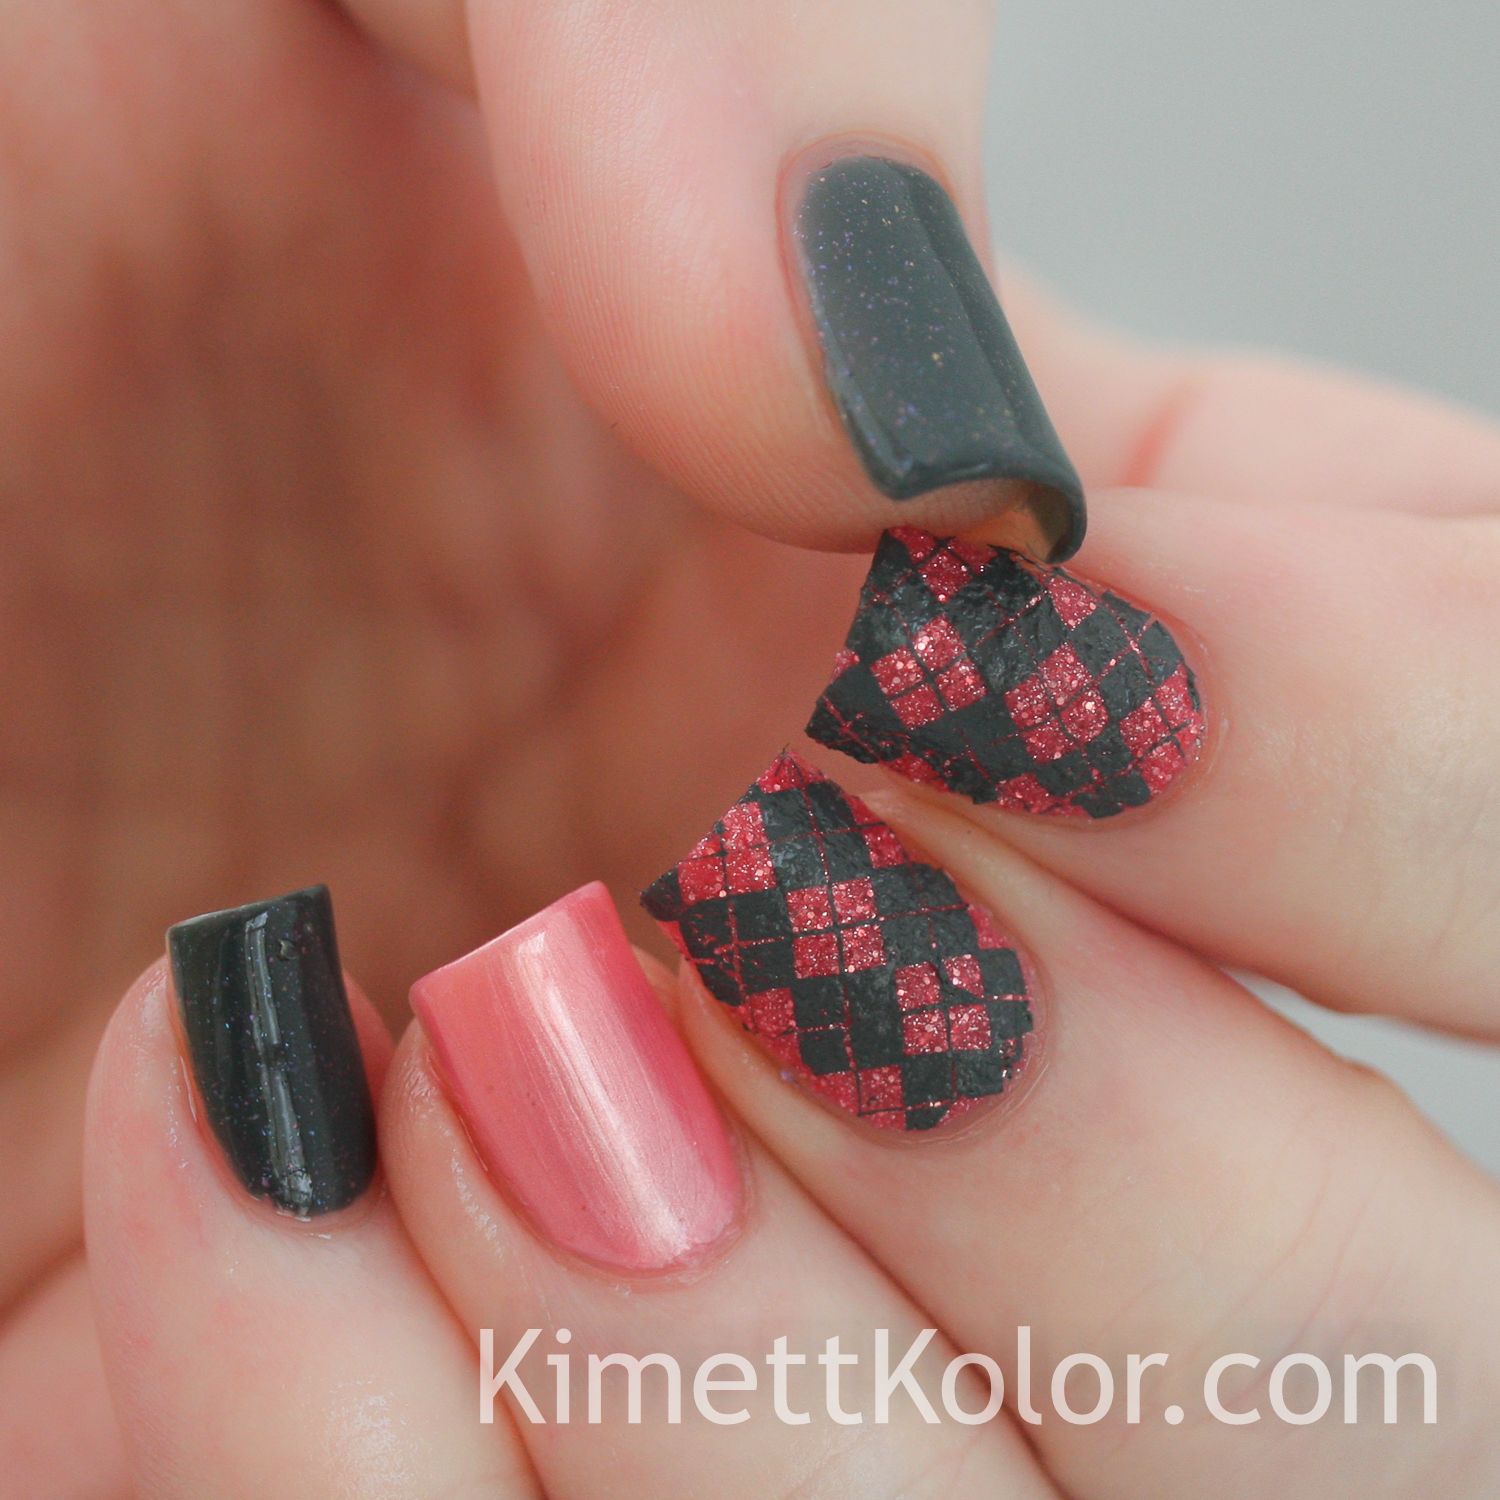 KimettKolor #whencolourscollide grey pink nail art